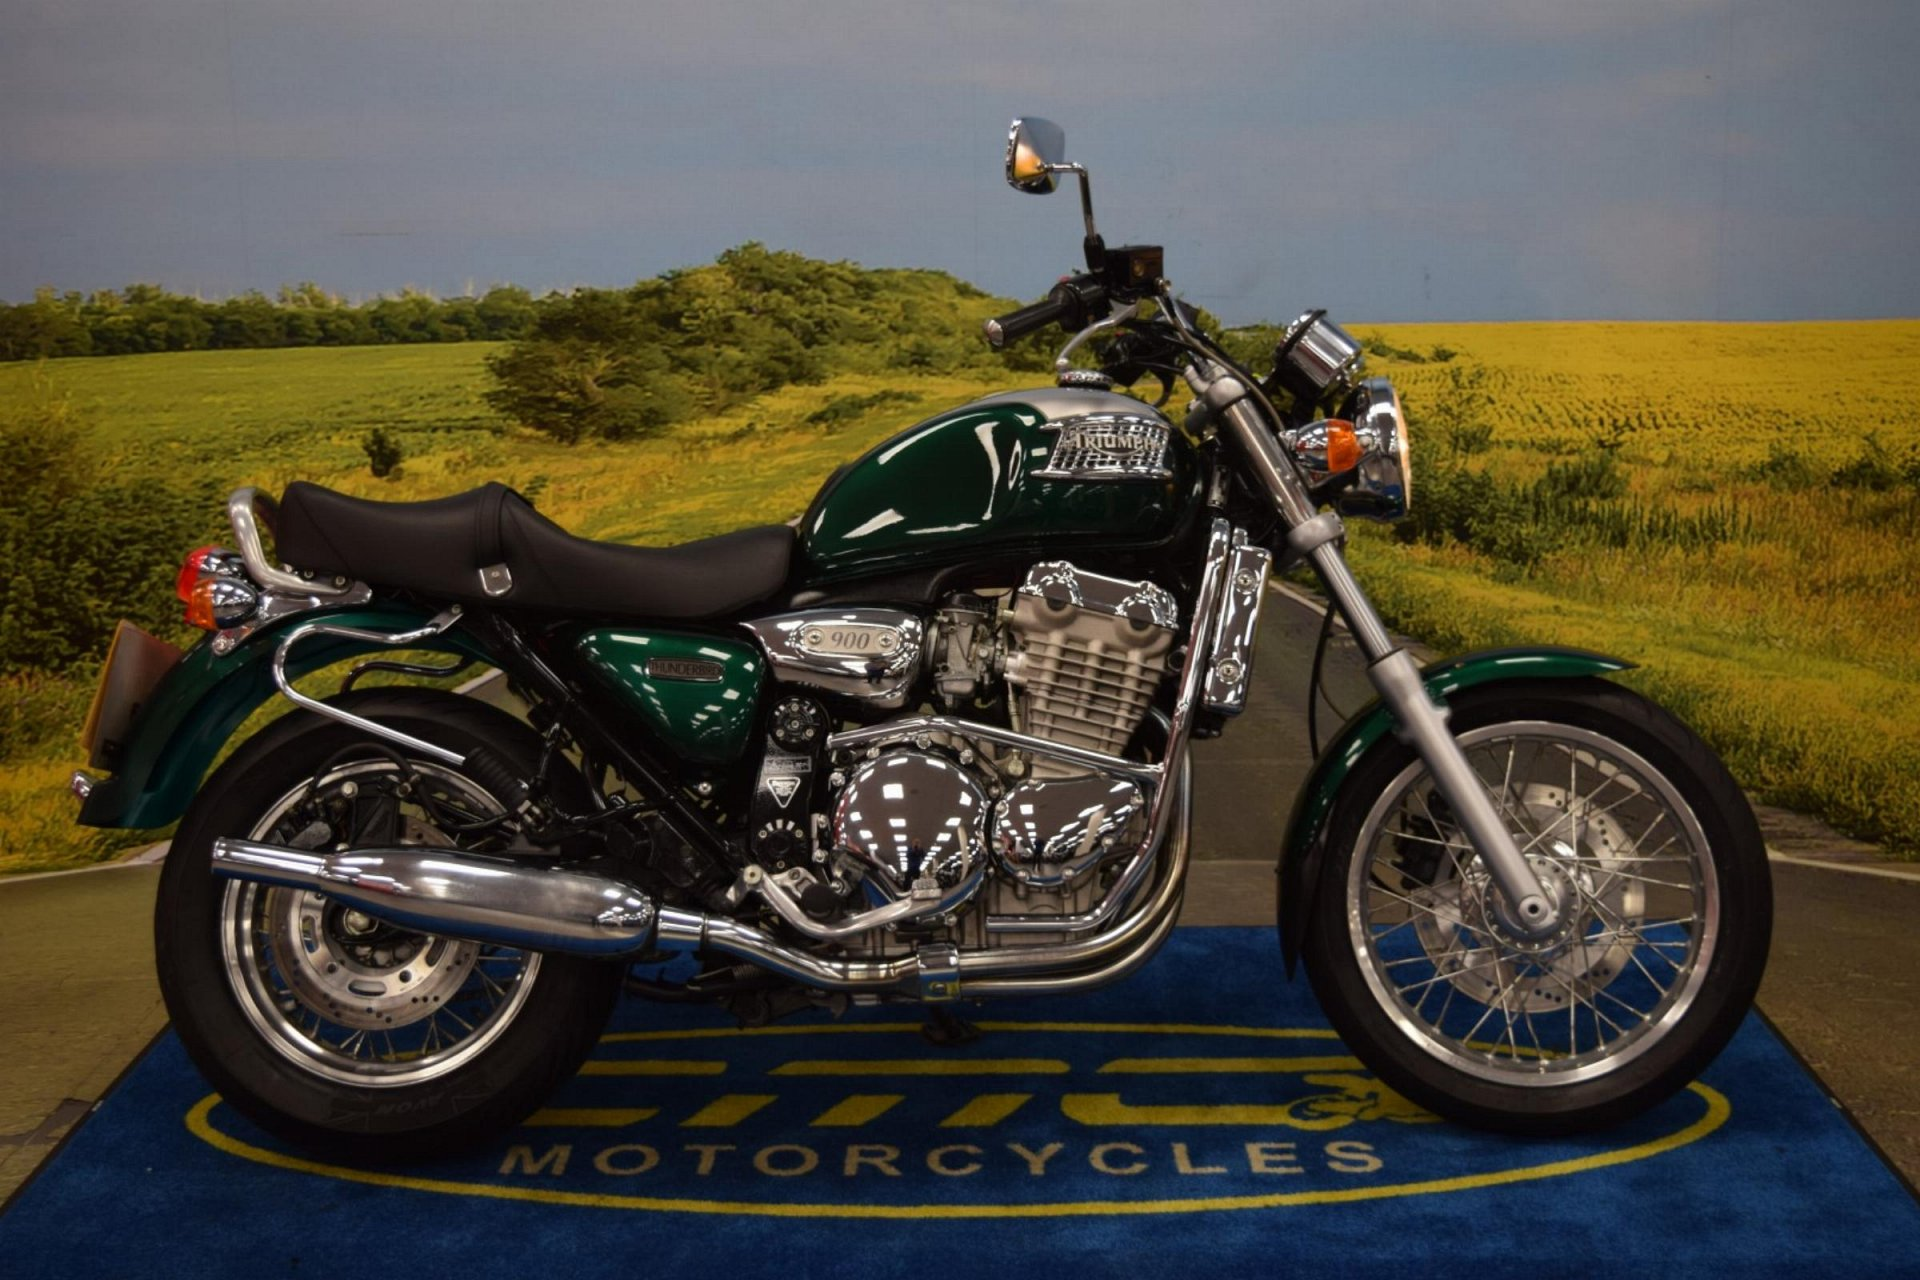 1998 Triumph Thunderbird 900 for sale in Staffordshire